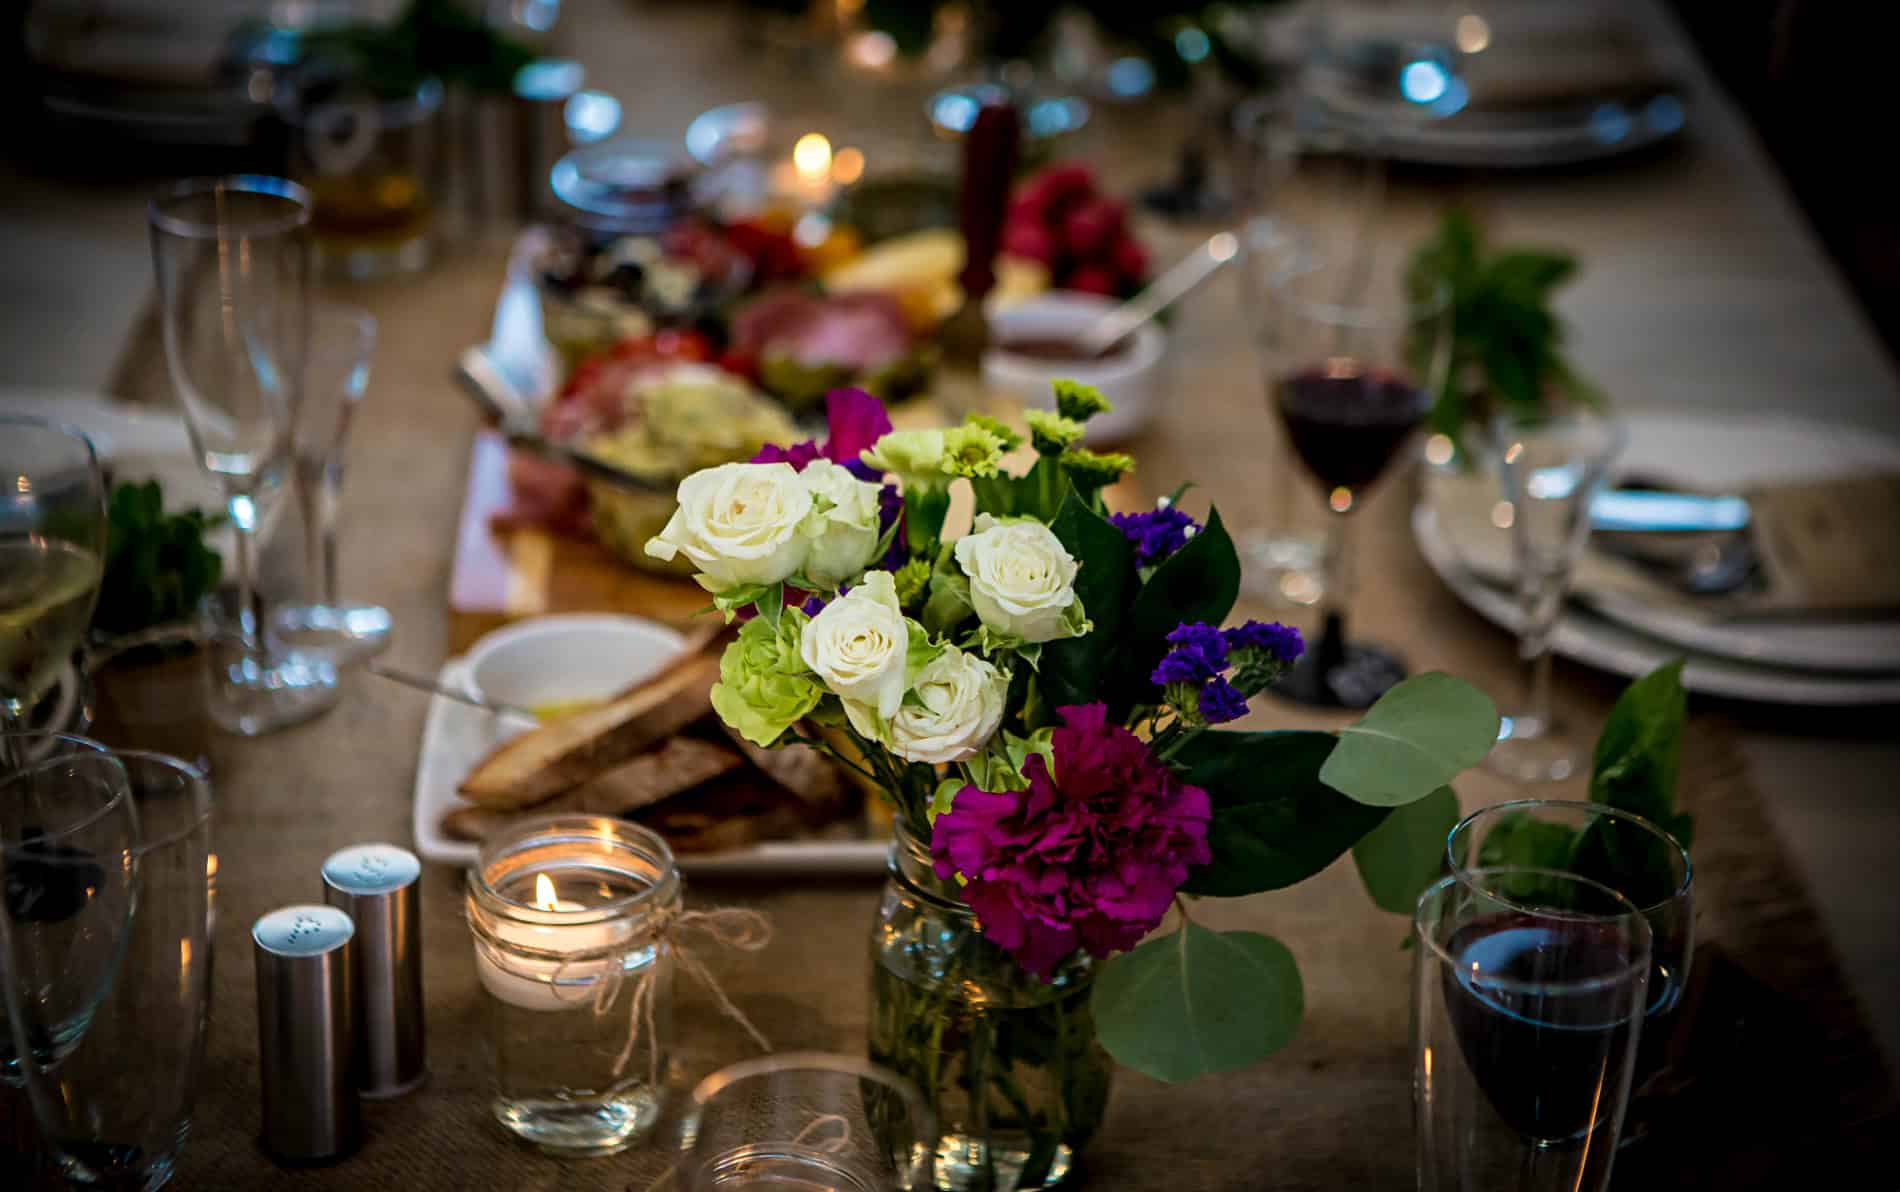 Dinner table set with red wine filled glasses, white plates, tan tablecloth, candles and white and purple flower arrangement.